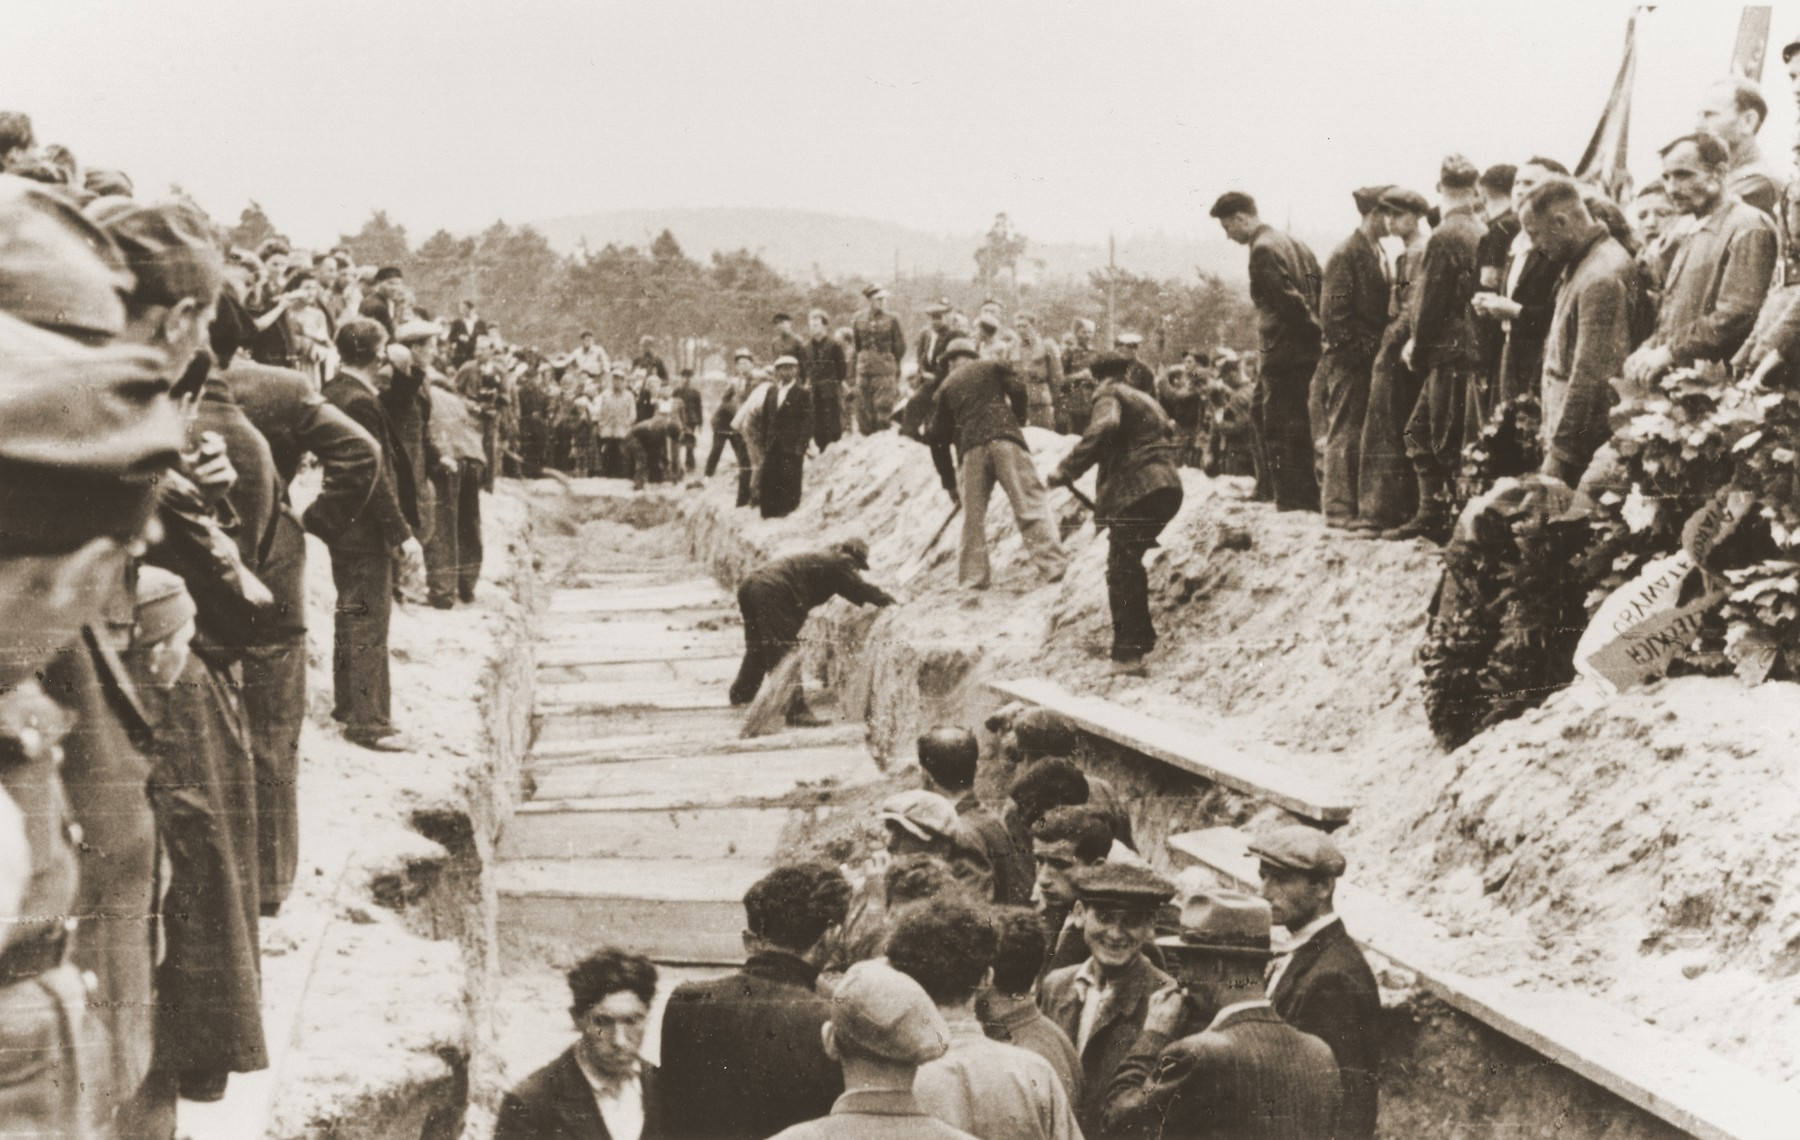 Mourners and local residents watch as men shovel dirt into the mass grave of the victims of the Kielce pogrom.